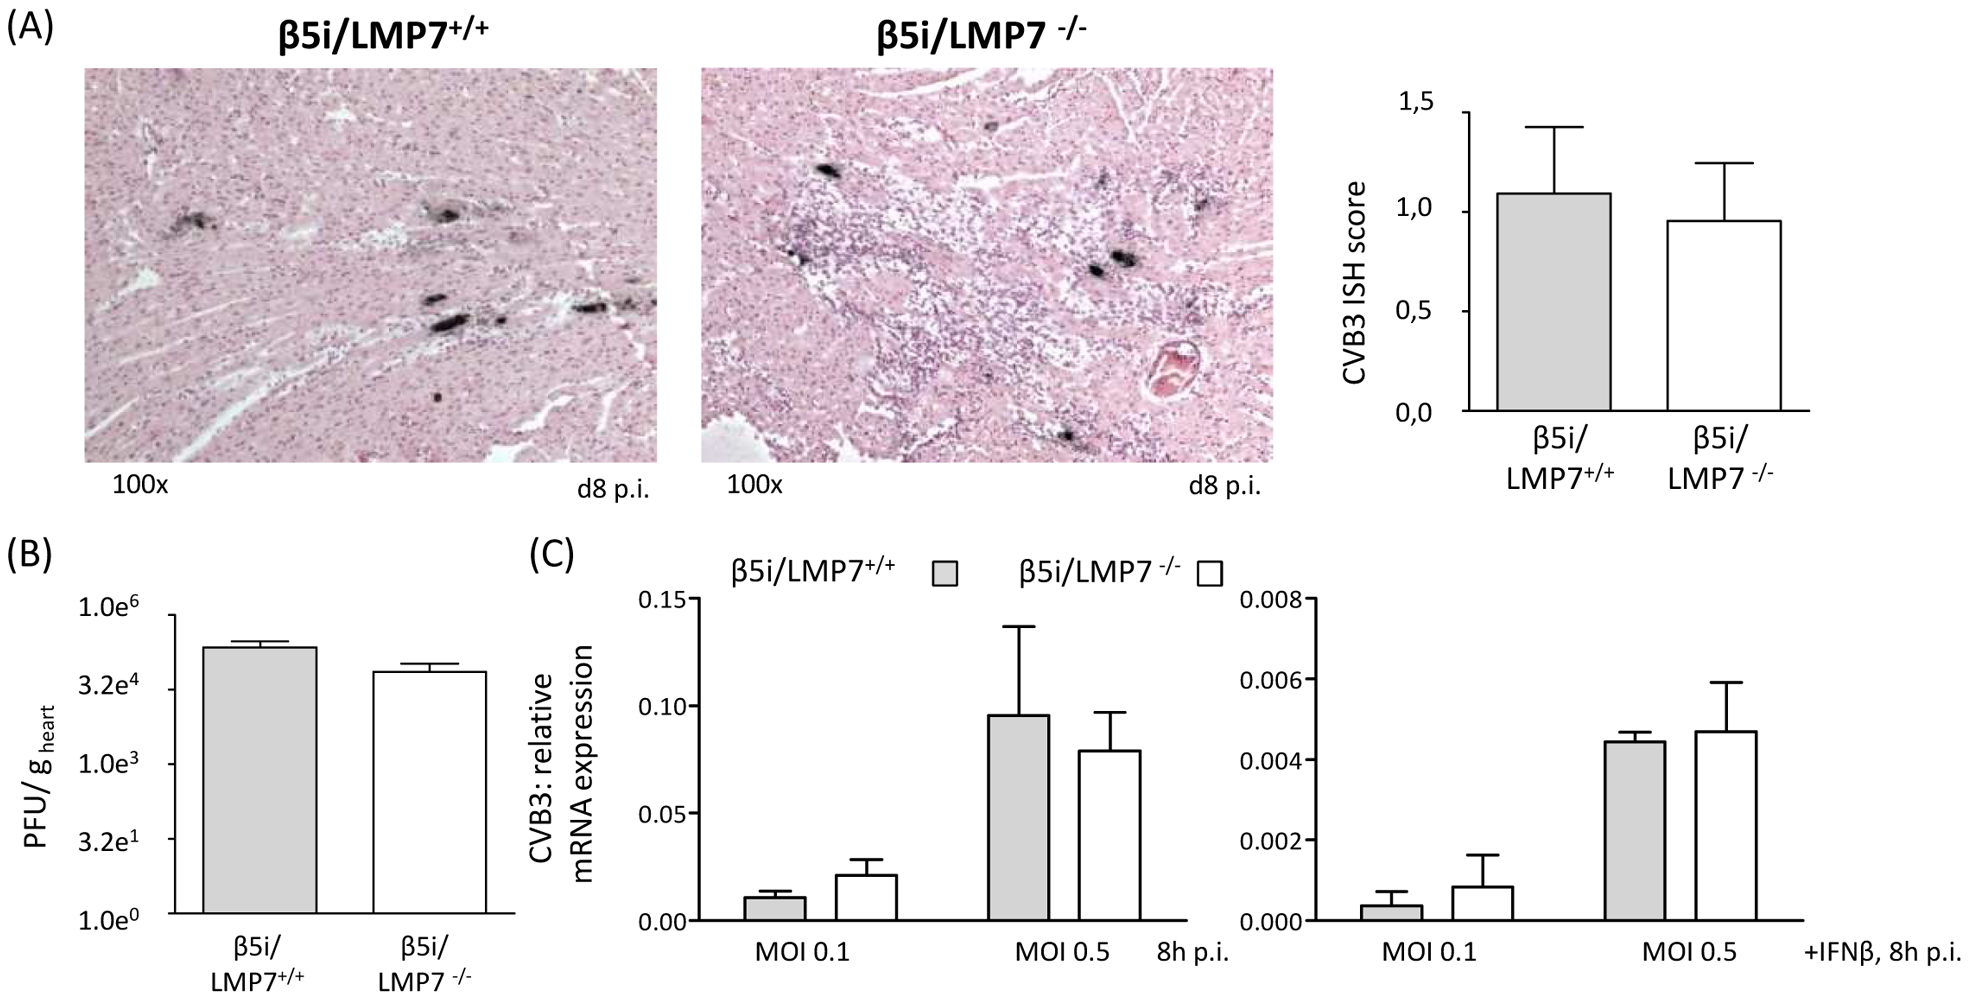 Viral load is not affected in IP-deficient mice.